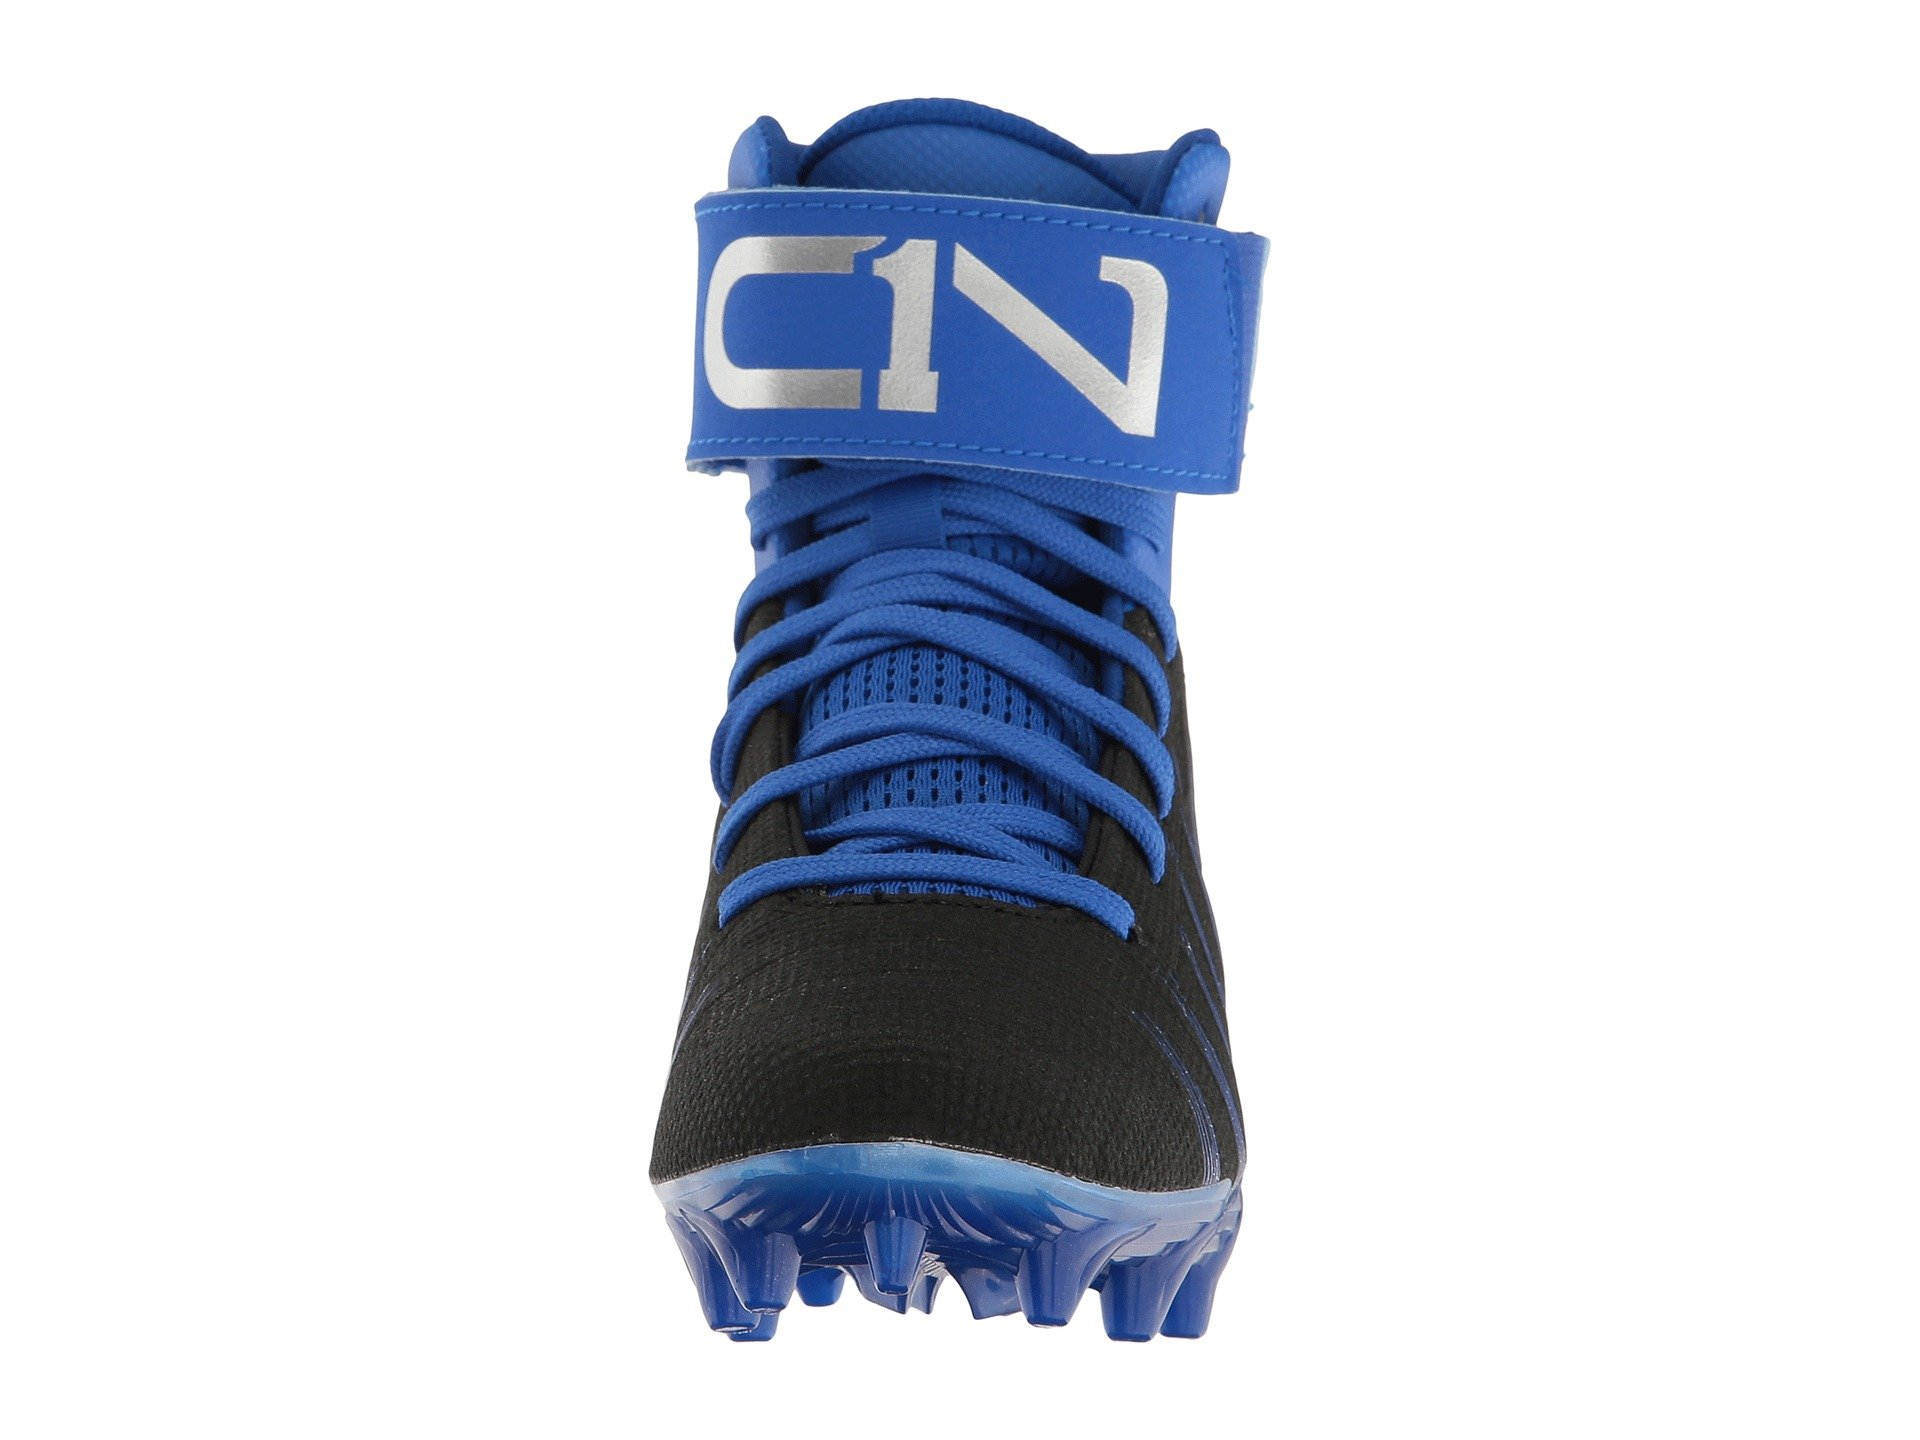 ua c1n cleats